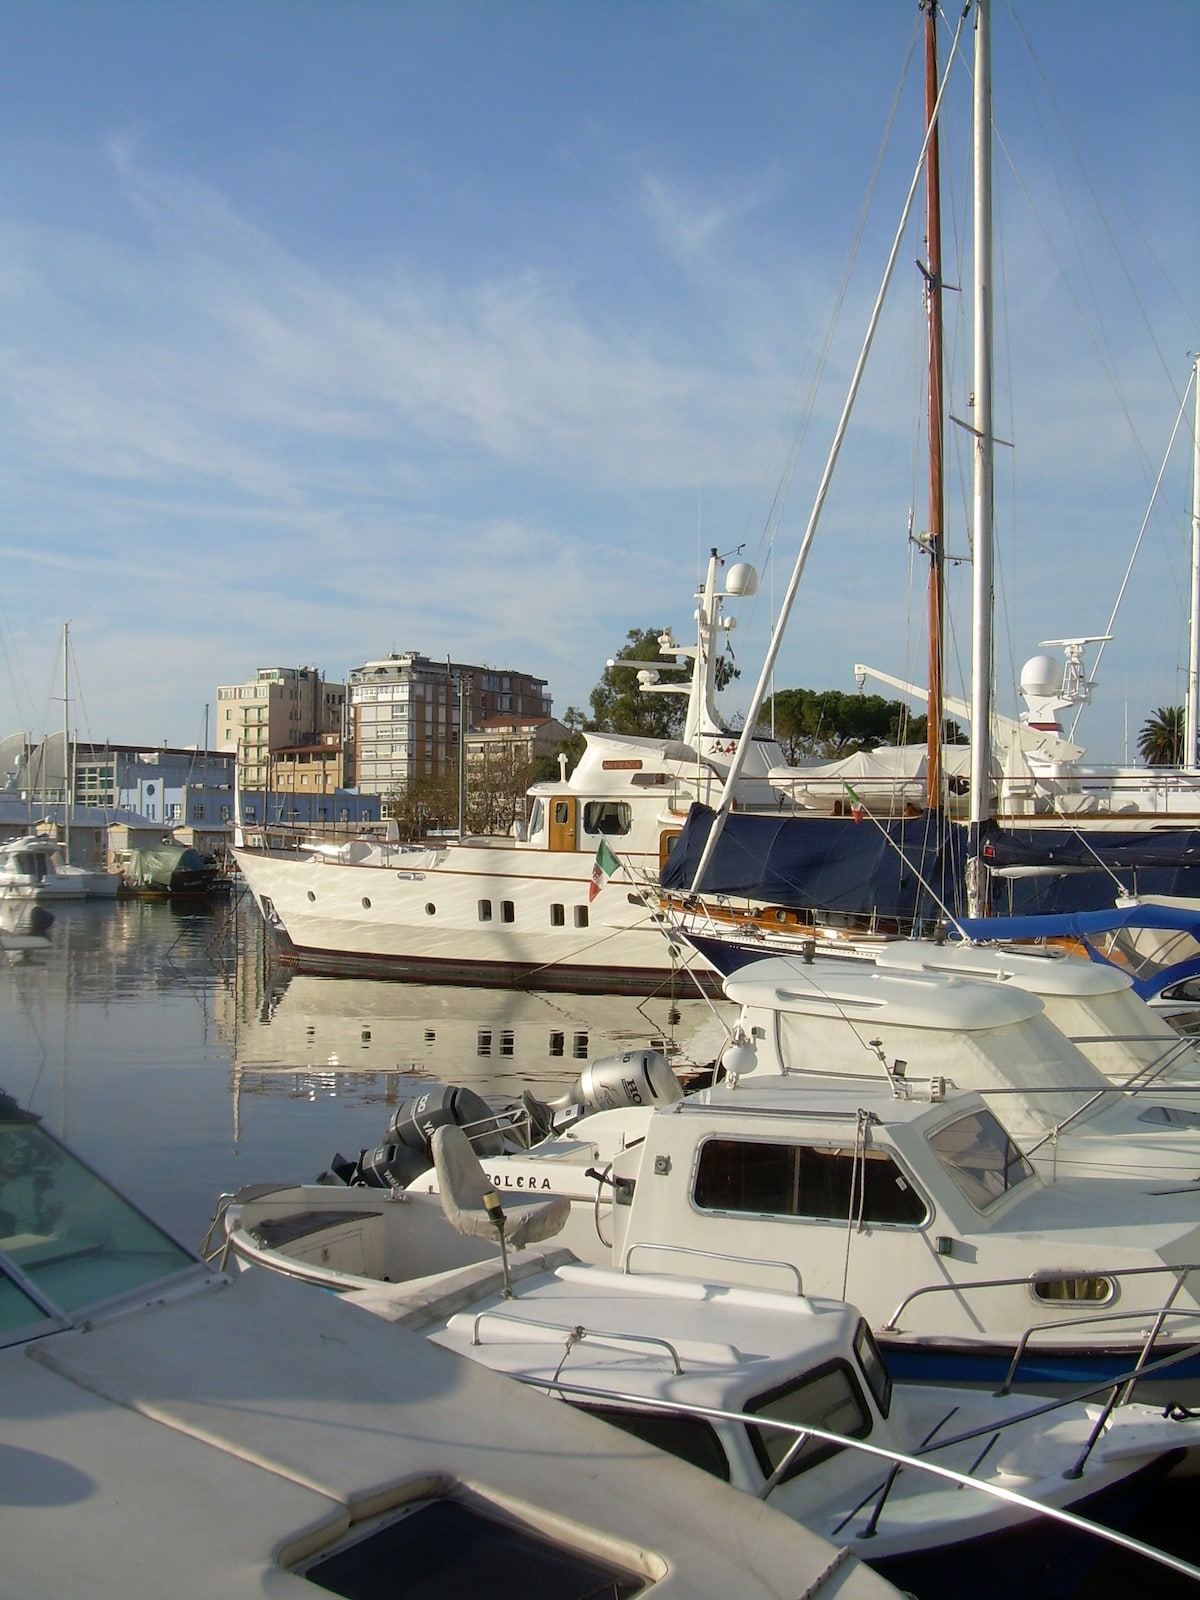 the marina: close to the house, a wonderful showcase for some of the best yachts in the world